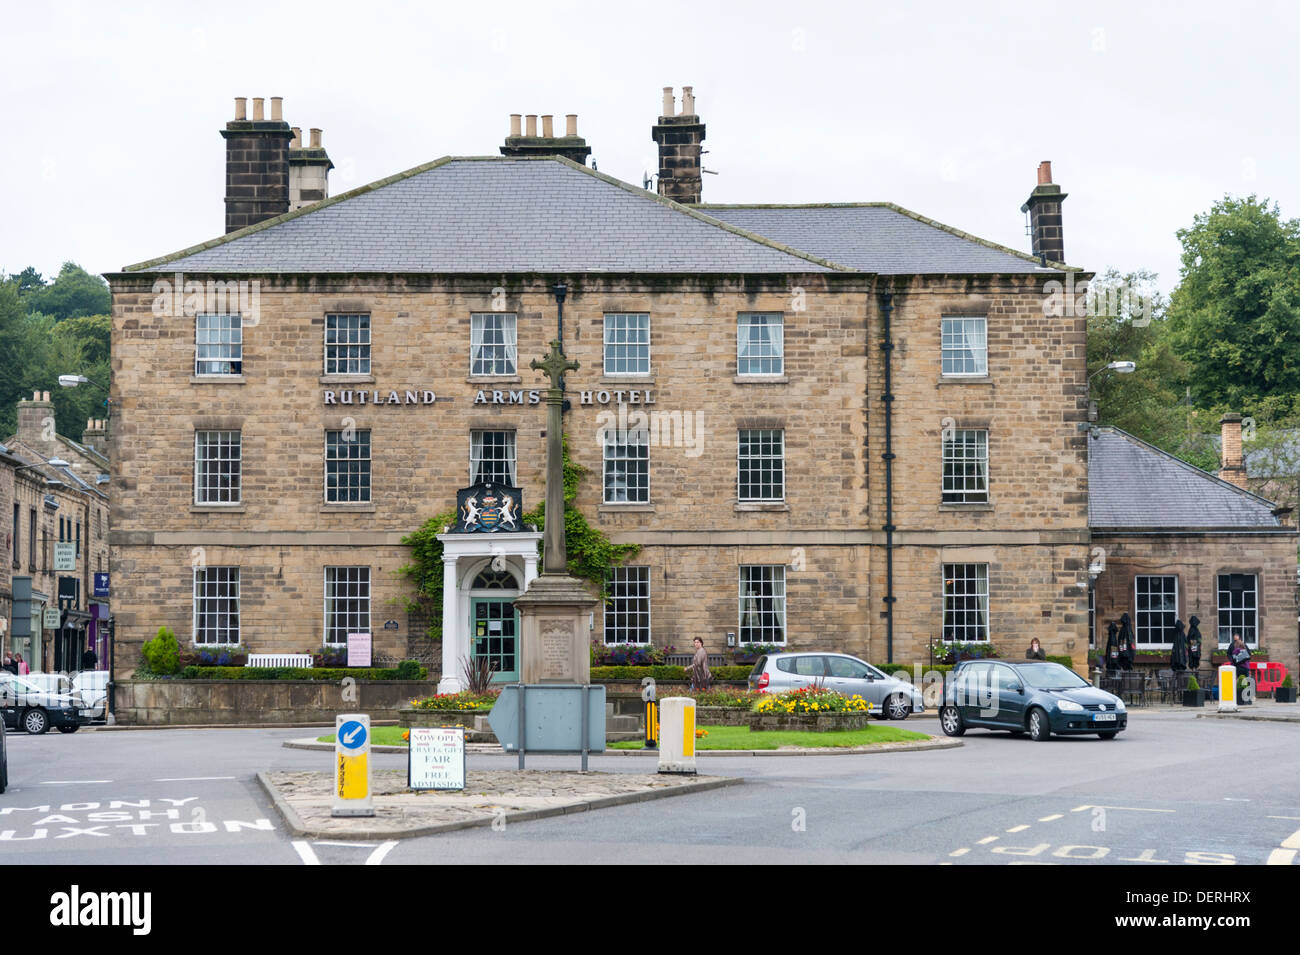 The Rutland Arms Hotel Bakewell Derbyshire Uk Stock Photo